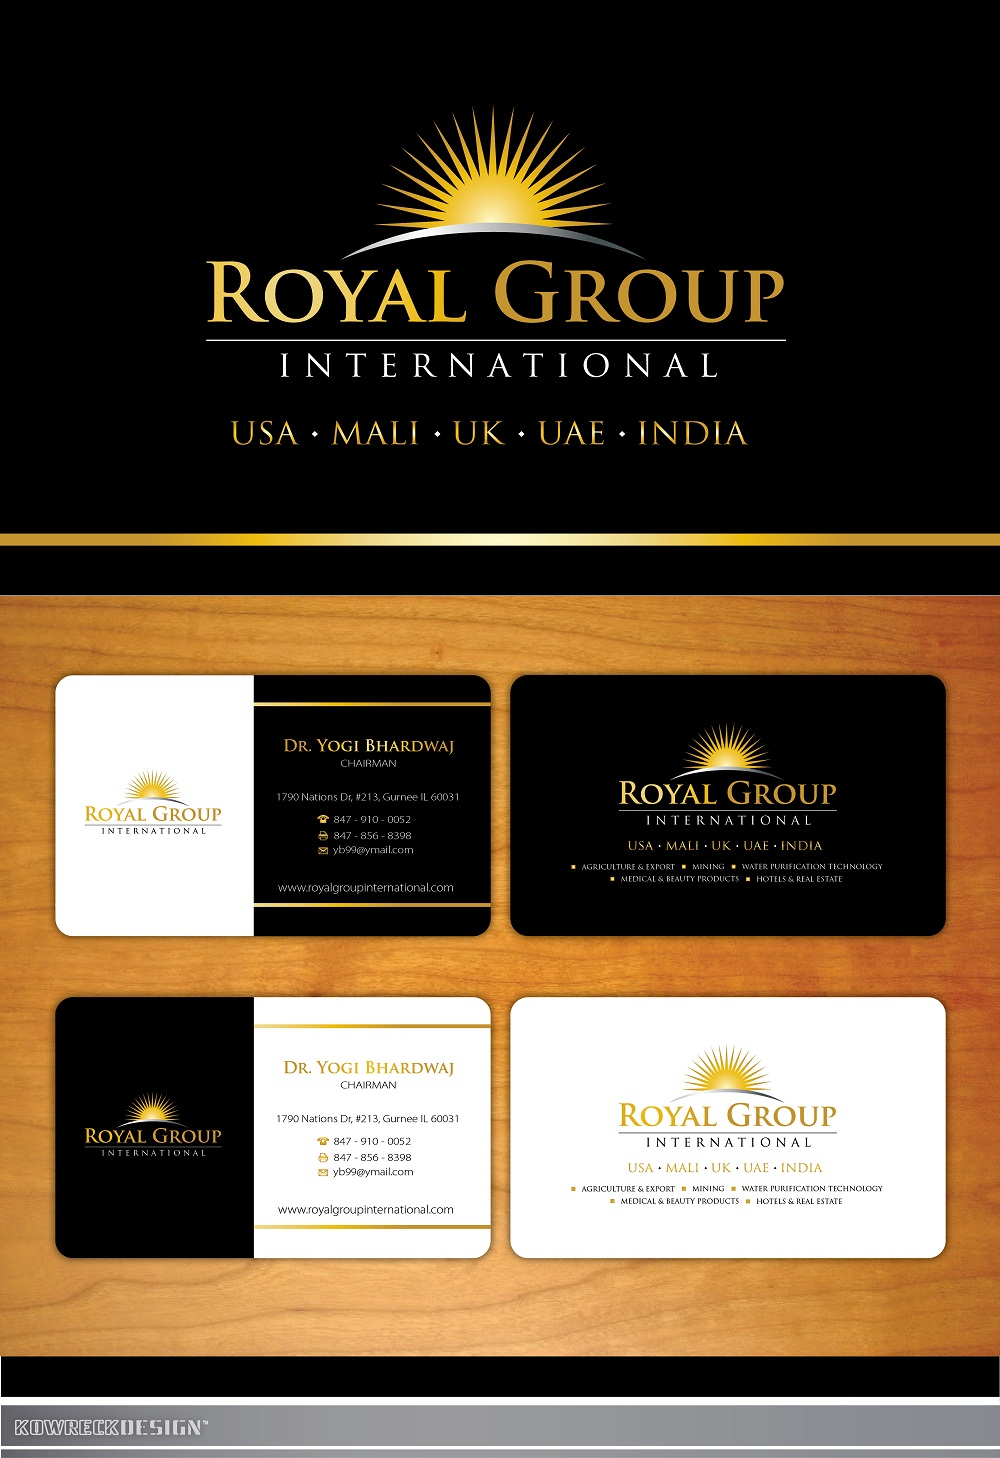 Business card design contests royal group international business business card design by kowreck entry no 46 in the business card design contest colourmoves